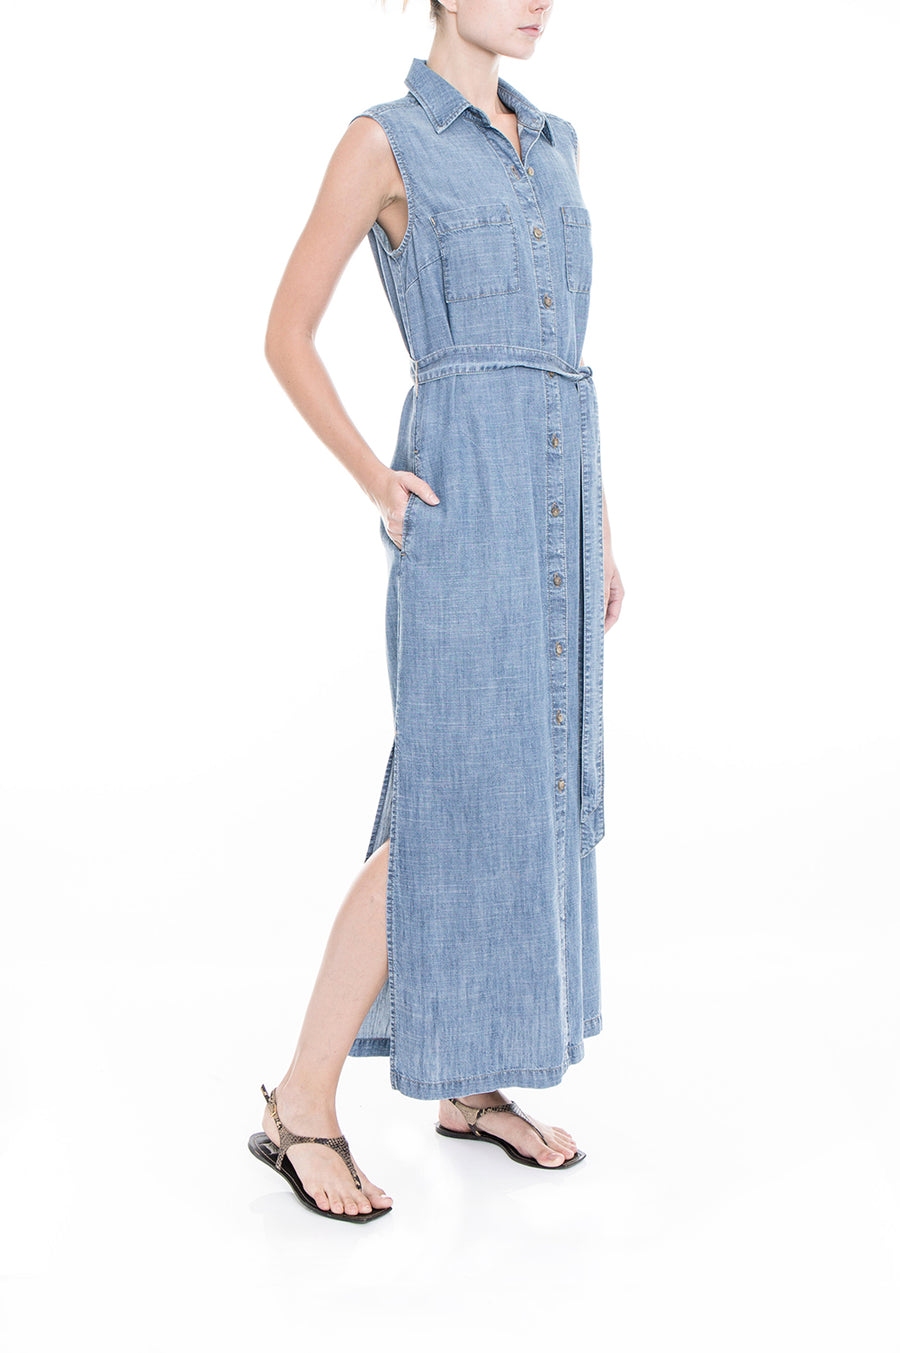 Jasmine Denim Dress - level99jeans